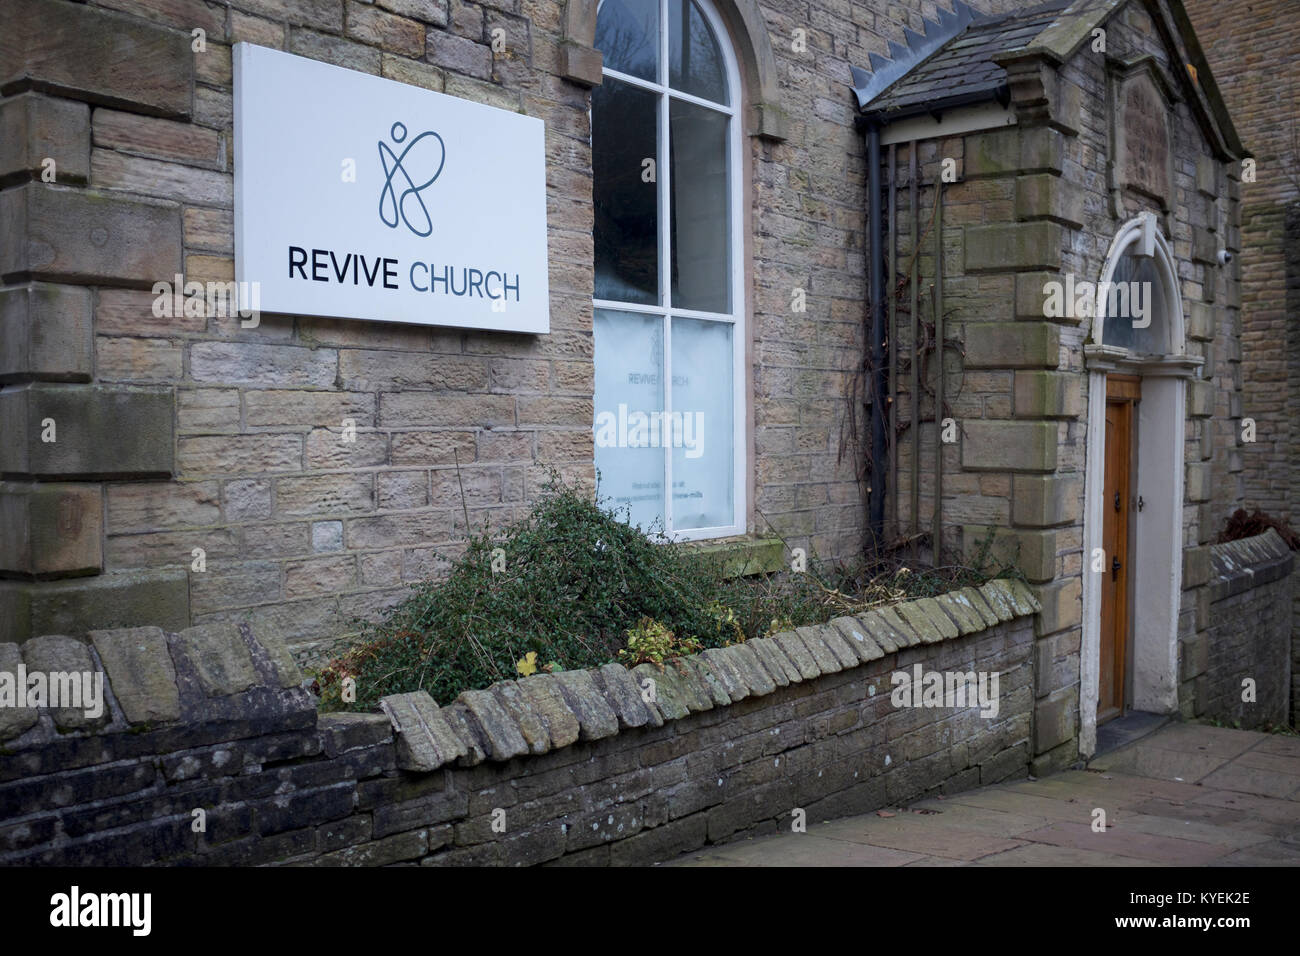 The Revive Church, High Street, New Mills, Derbyshire - Stock Image